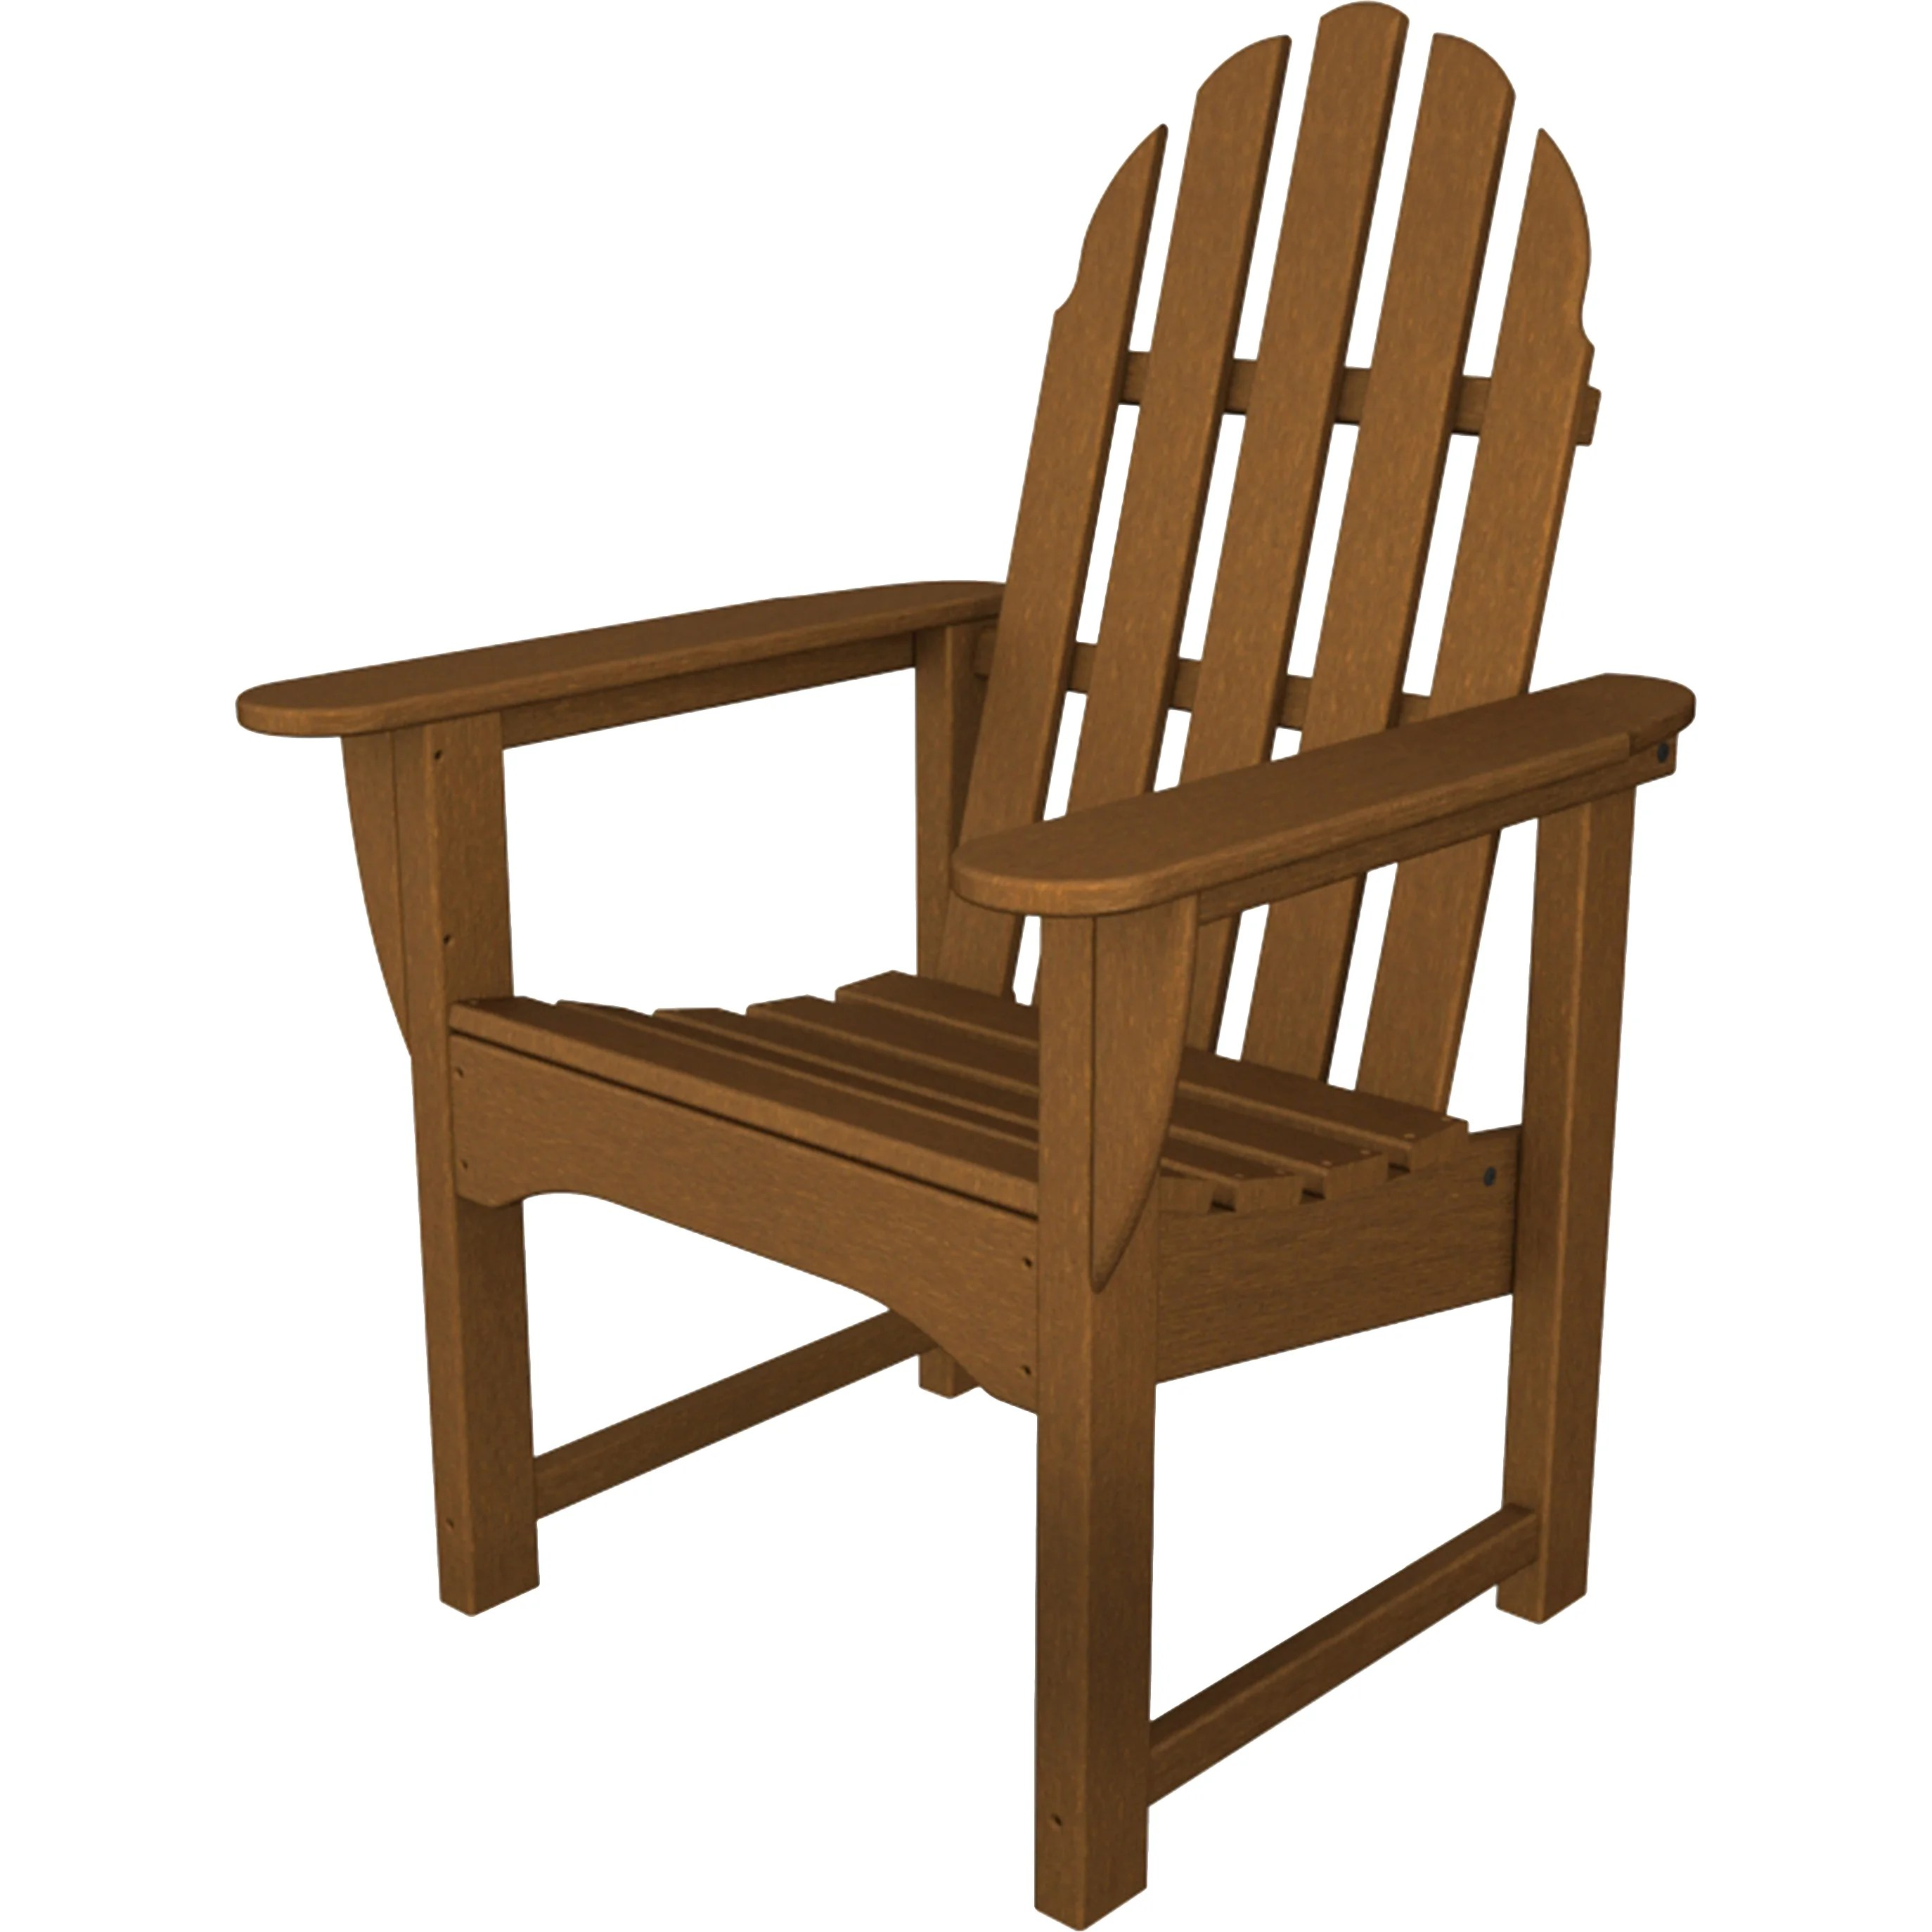 adirondack style dining chairs pyramat wireless gaming chair how to connect polywood arm allmodern